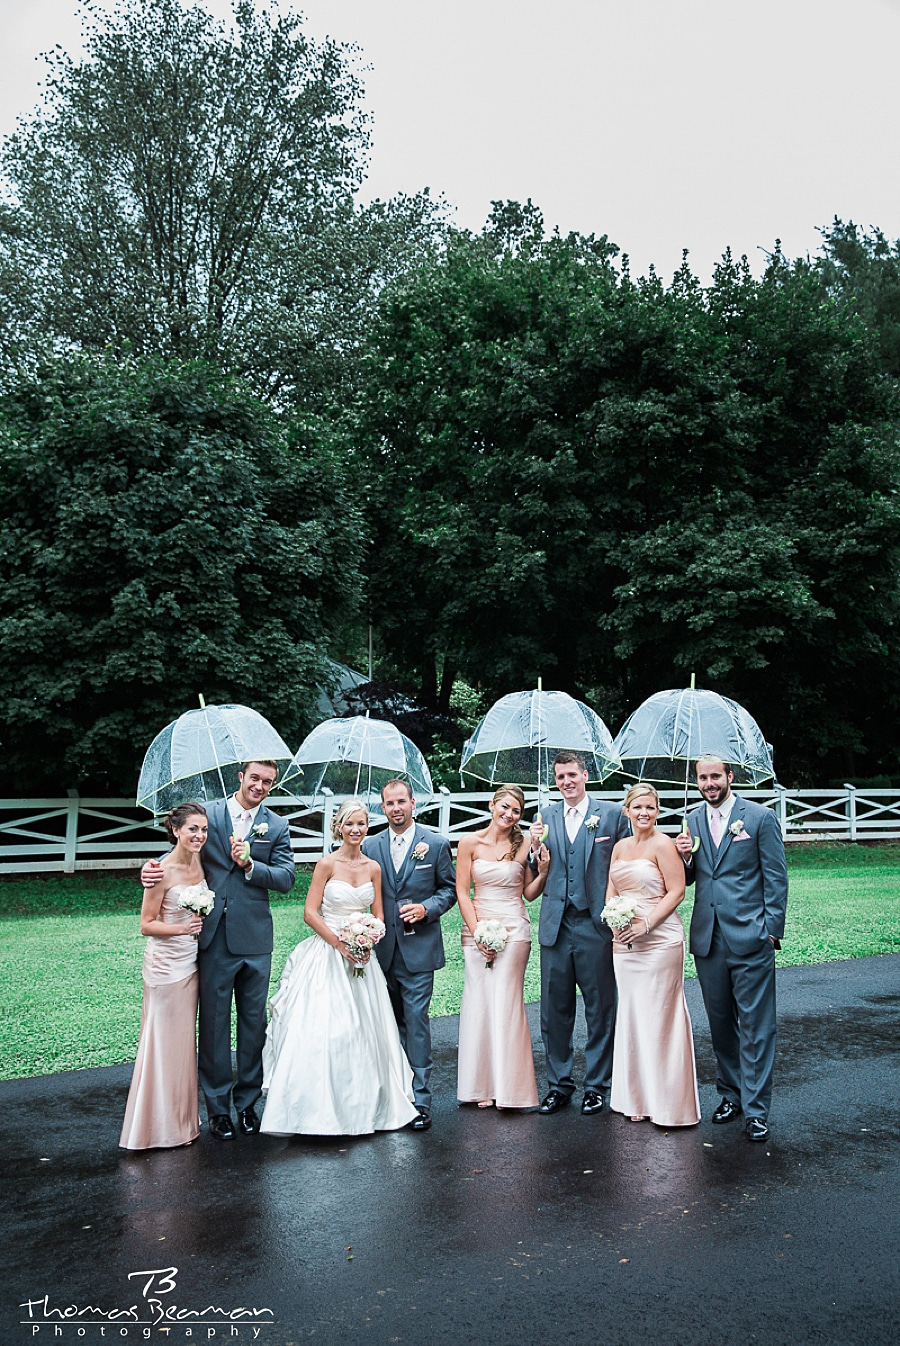 Thomas_beaman_wedding_best_of_2015_photo-47